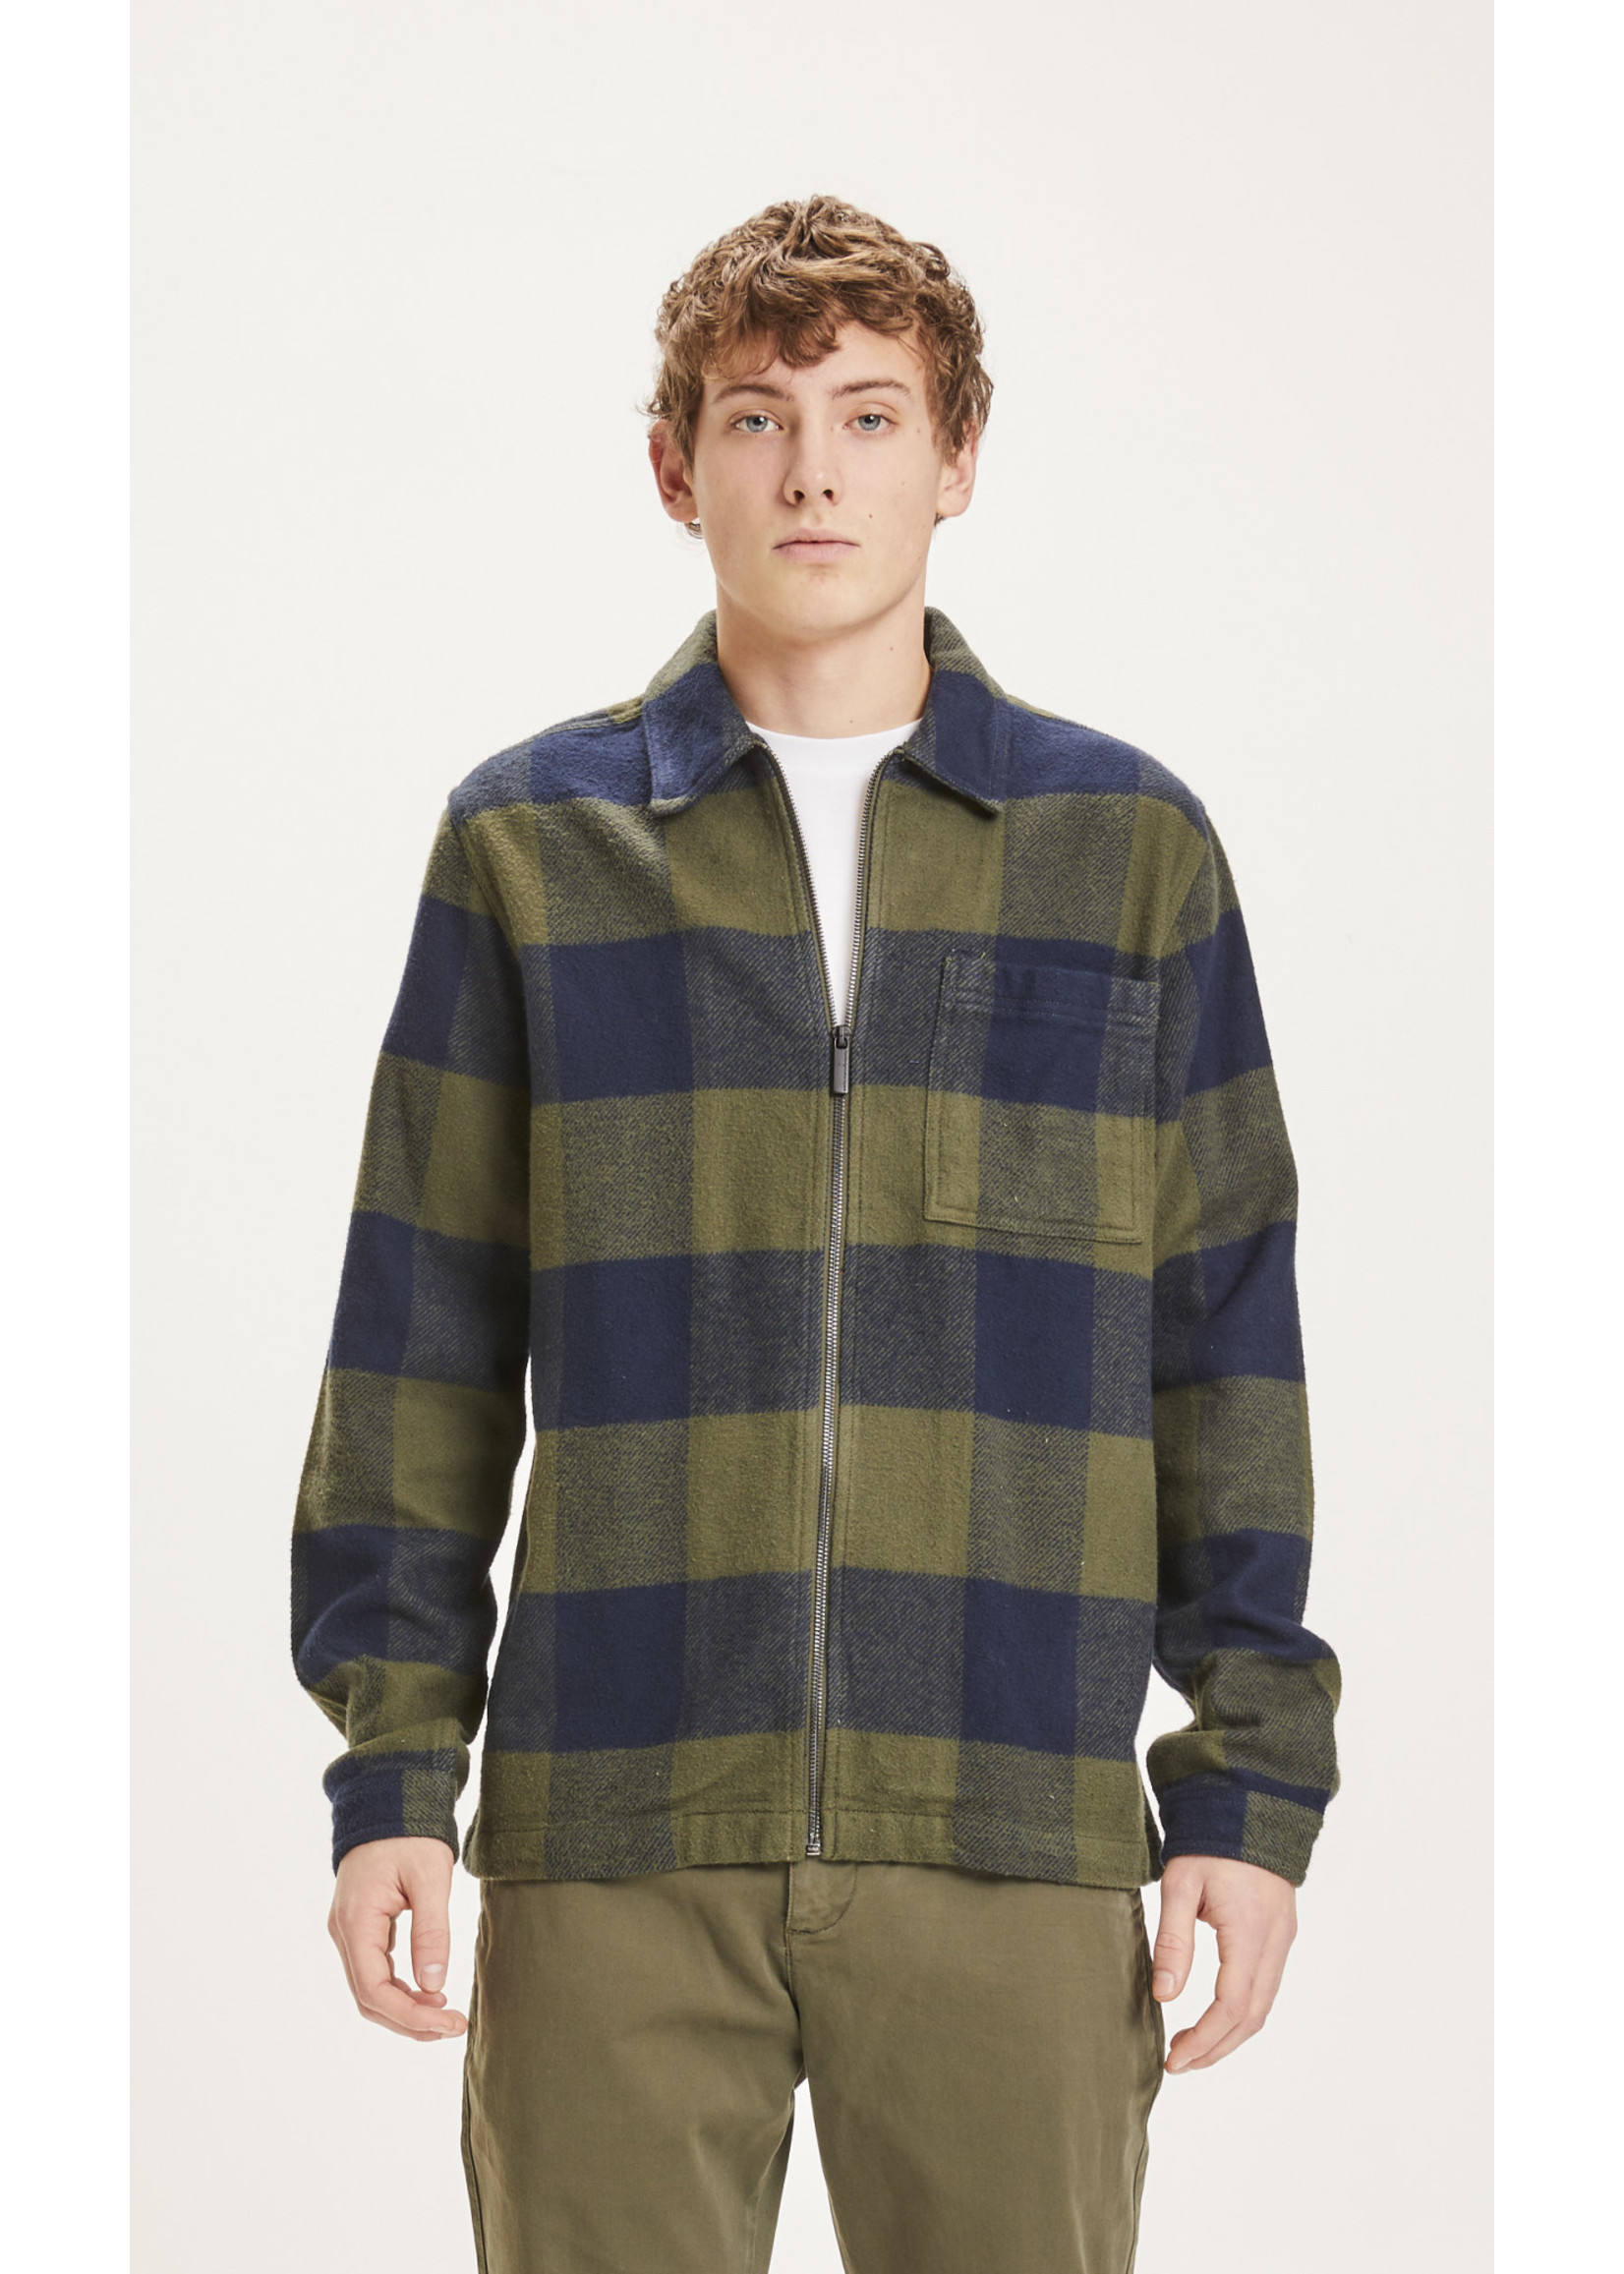 KnowledgeCotton KnowledgeCotton Pine checked heavy flannel overshirt - Forrest Night